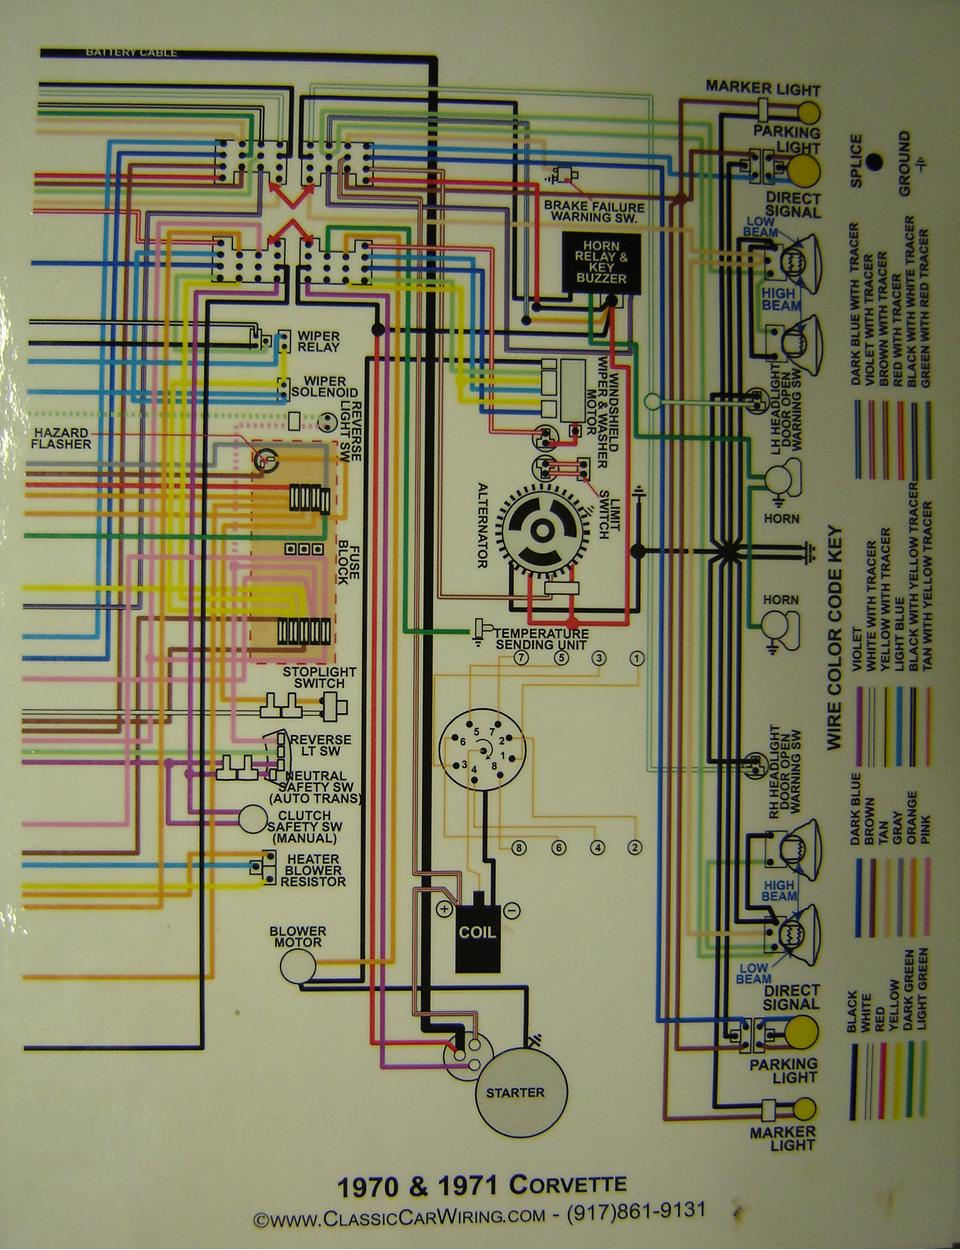 1970 71 corvette color wiring diagram B corvette wiring diagrams free 1980 corvette wiring diagram 65 corvette wiring diagram at soozxer.org